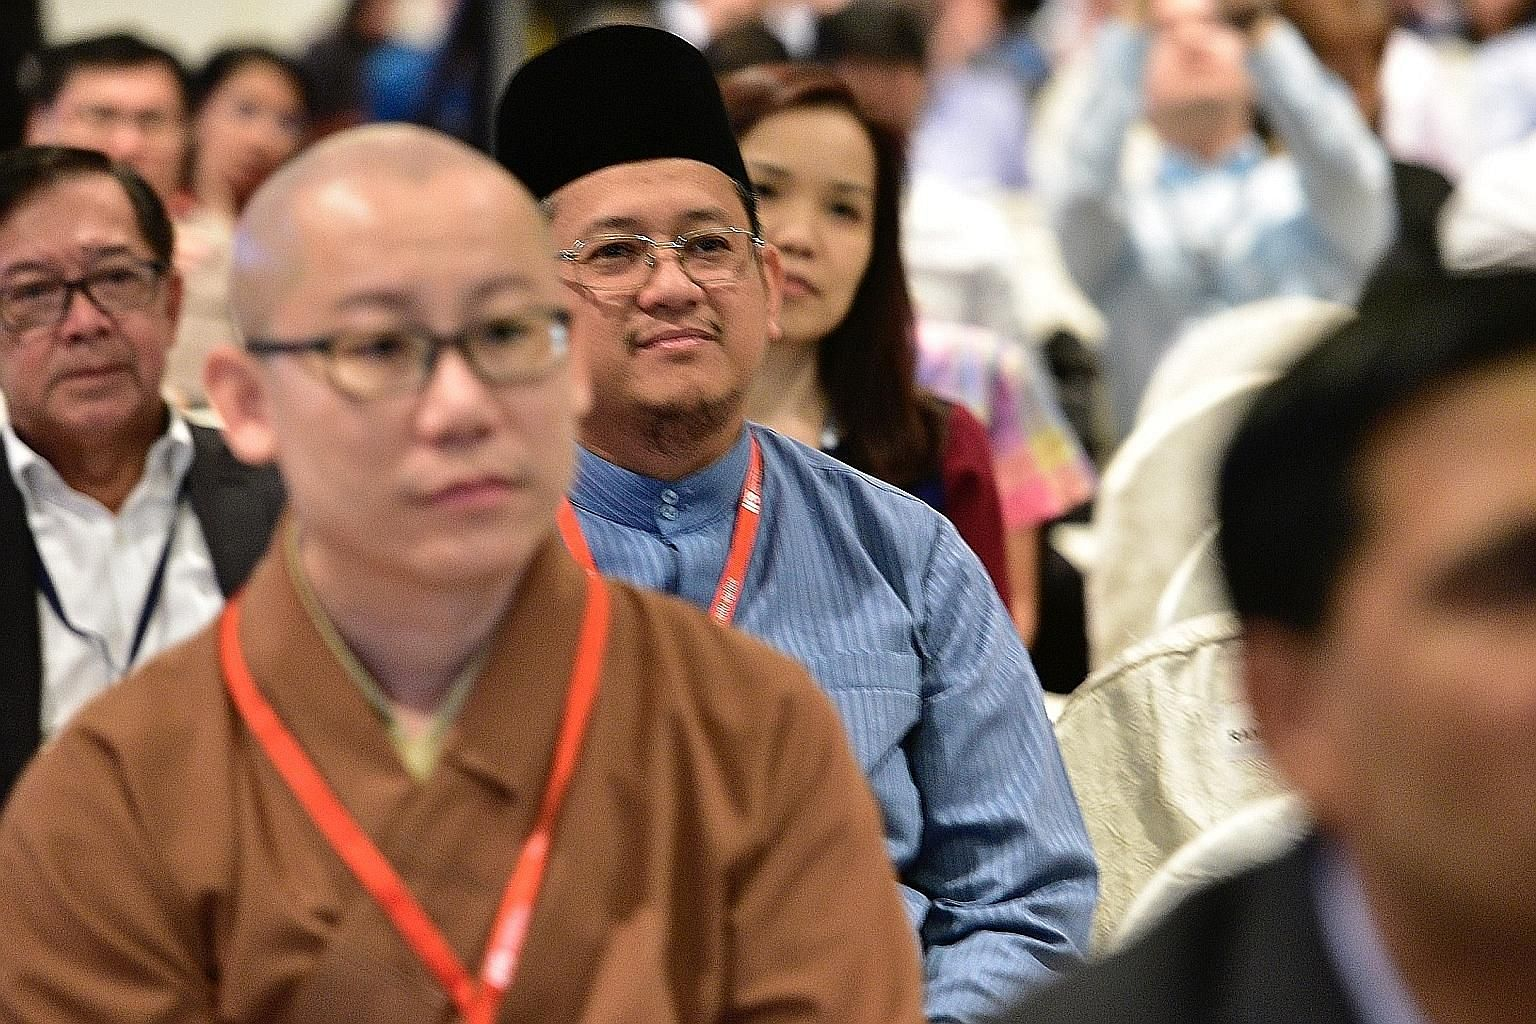 Mufti Fatris Bakaram (centre) at the Institute of Policy Studies forum, which focused on the role of the state and of religious leaders in fostering religious harmony in Singapore.